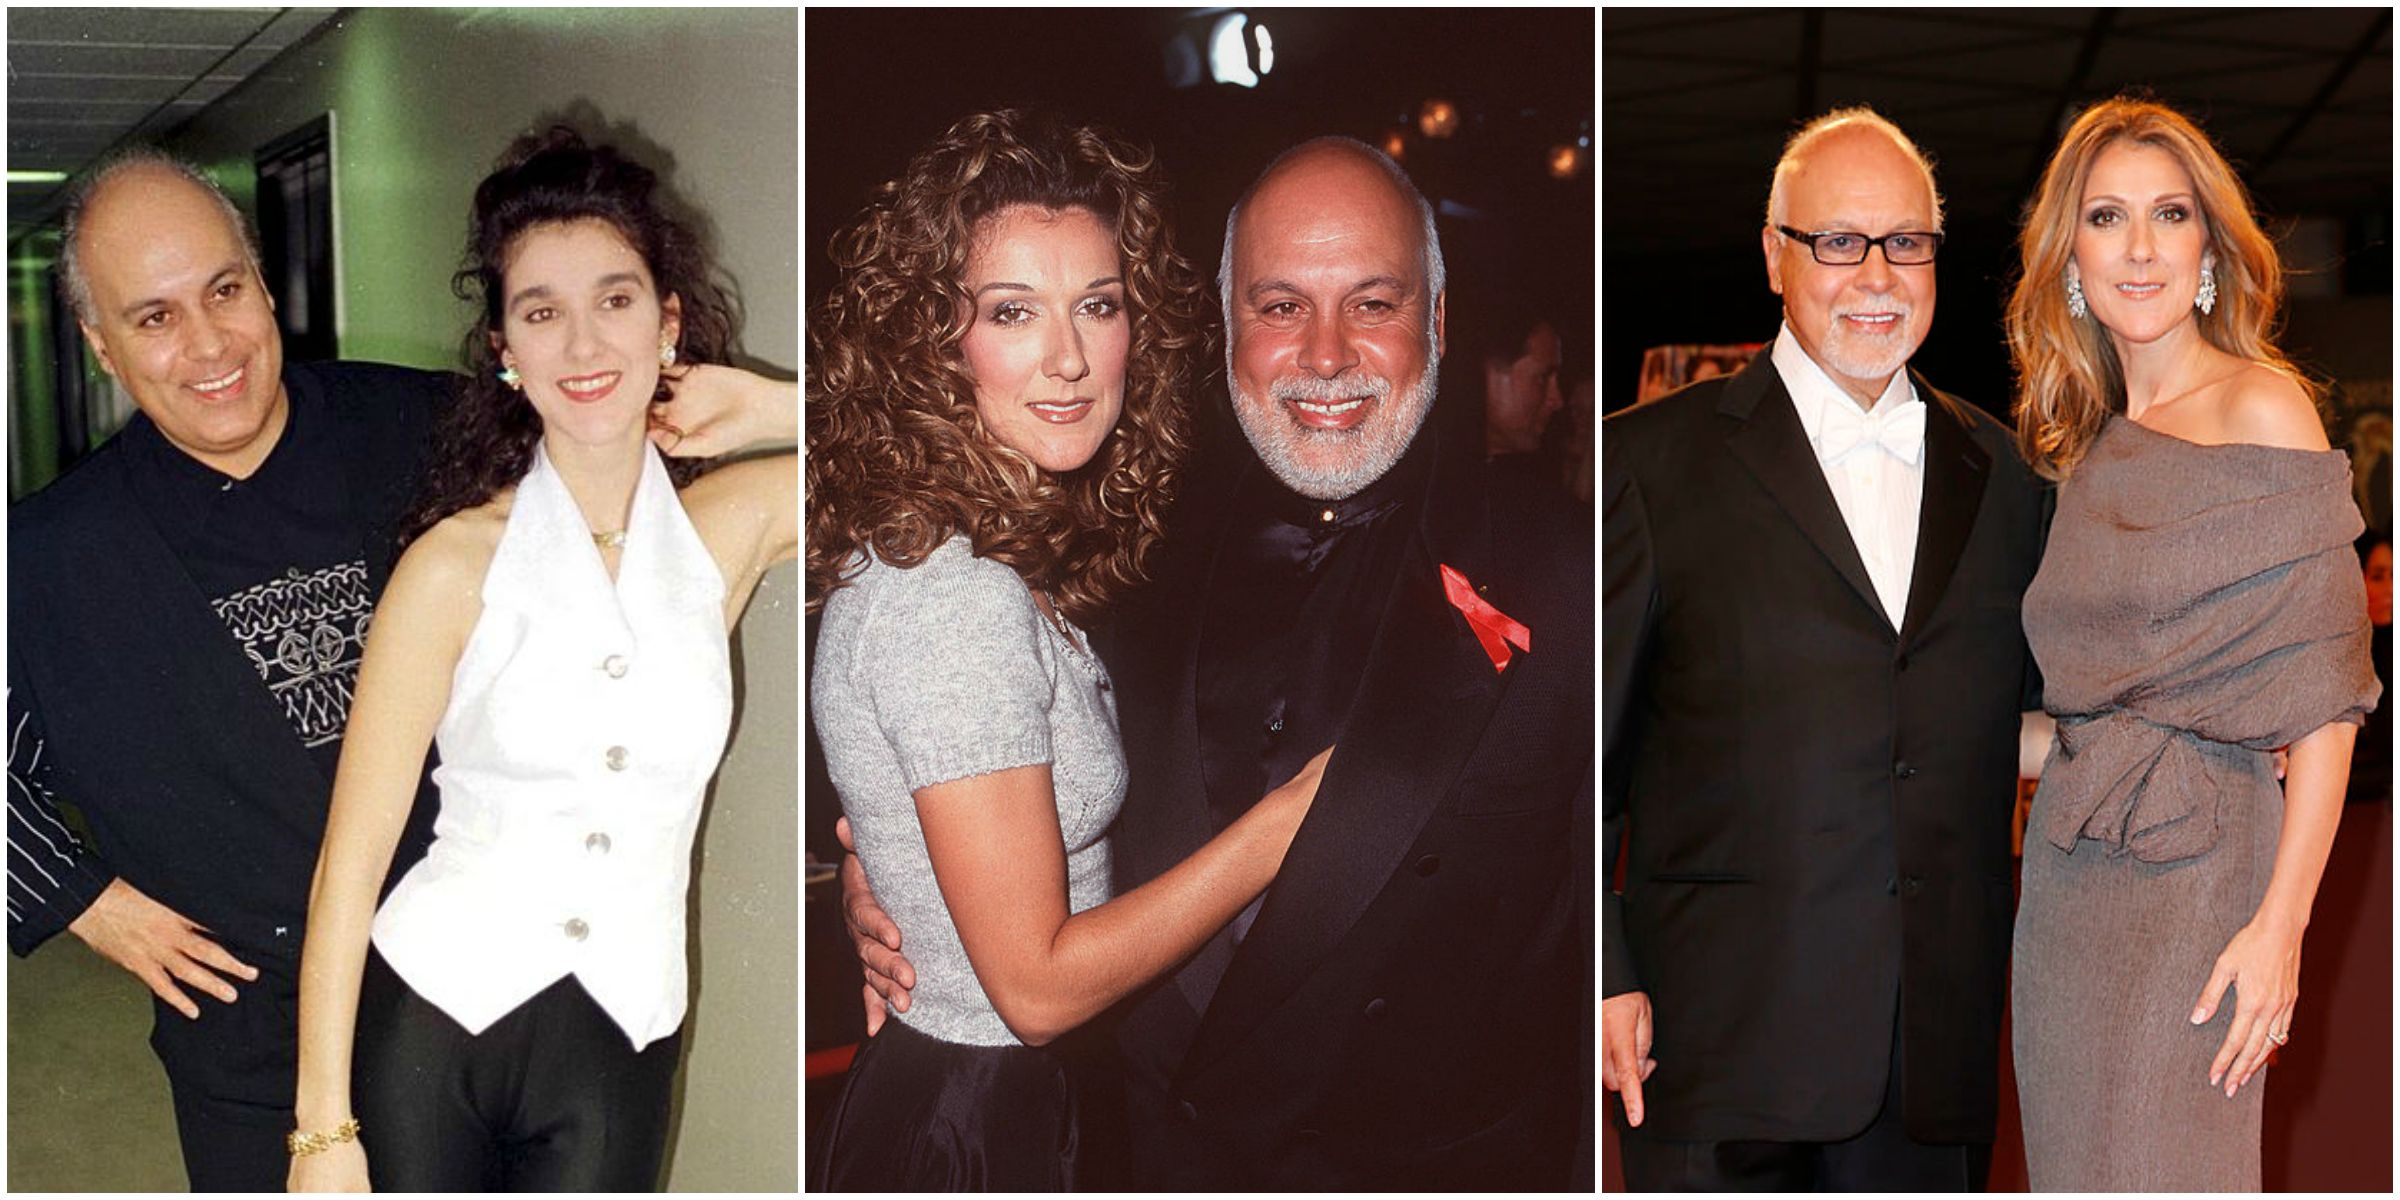 d2acfca60034 Celine Dion and Rene Angelil s Marriage - Celine Dion s Love Through The  Years